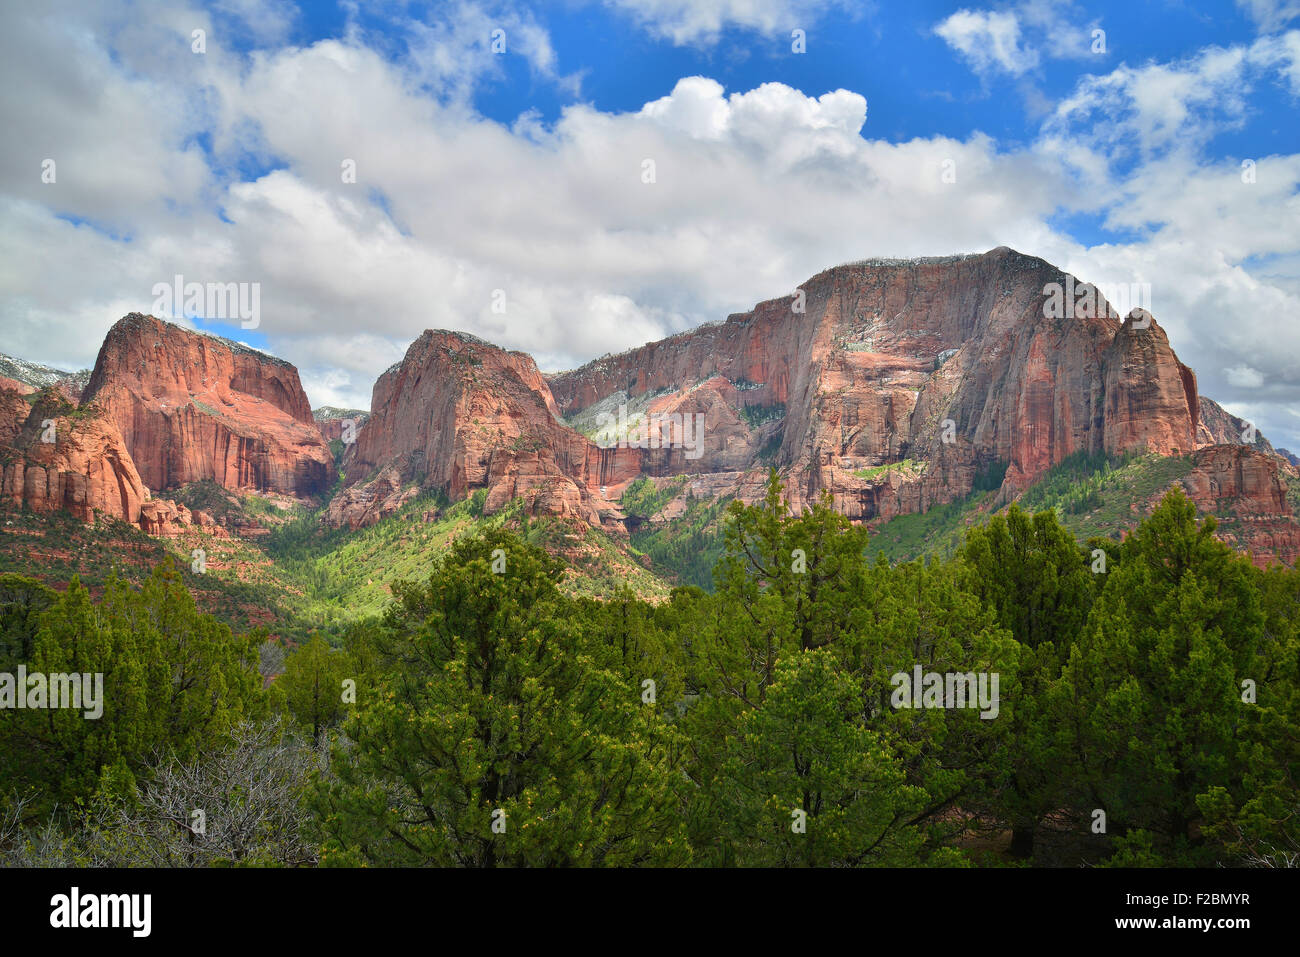 View from end of park road overlook in Kolob Canyon section of Zion National Park  in Southwestern Utah Stock Photo